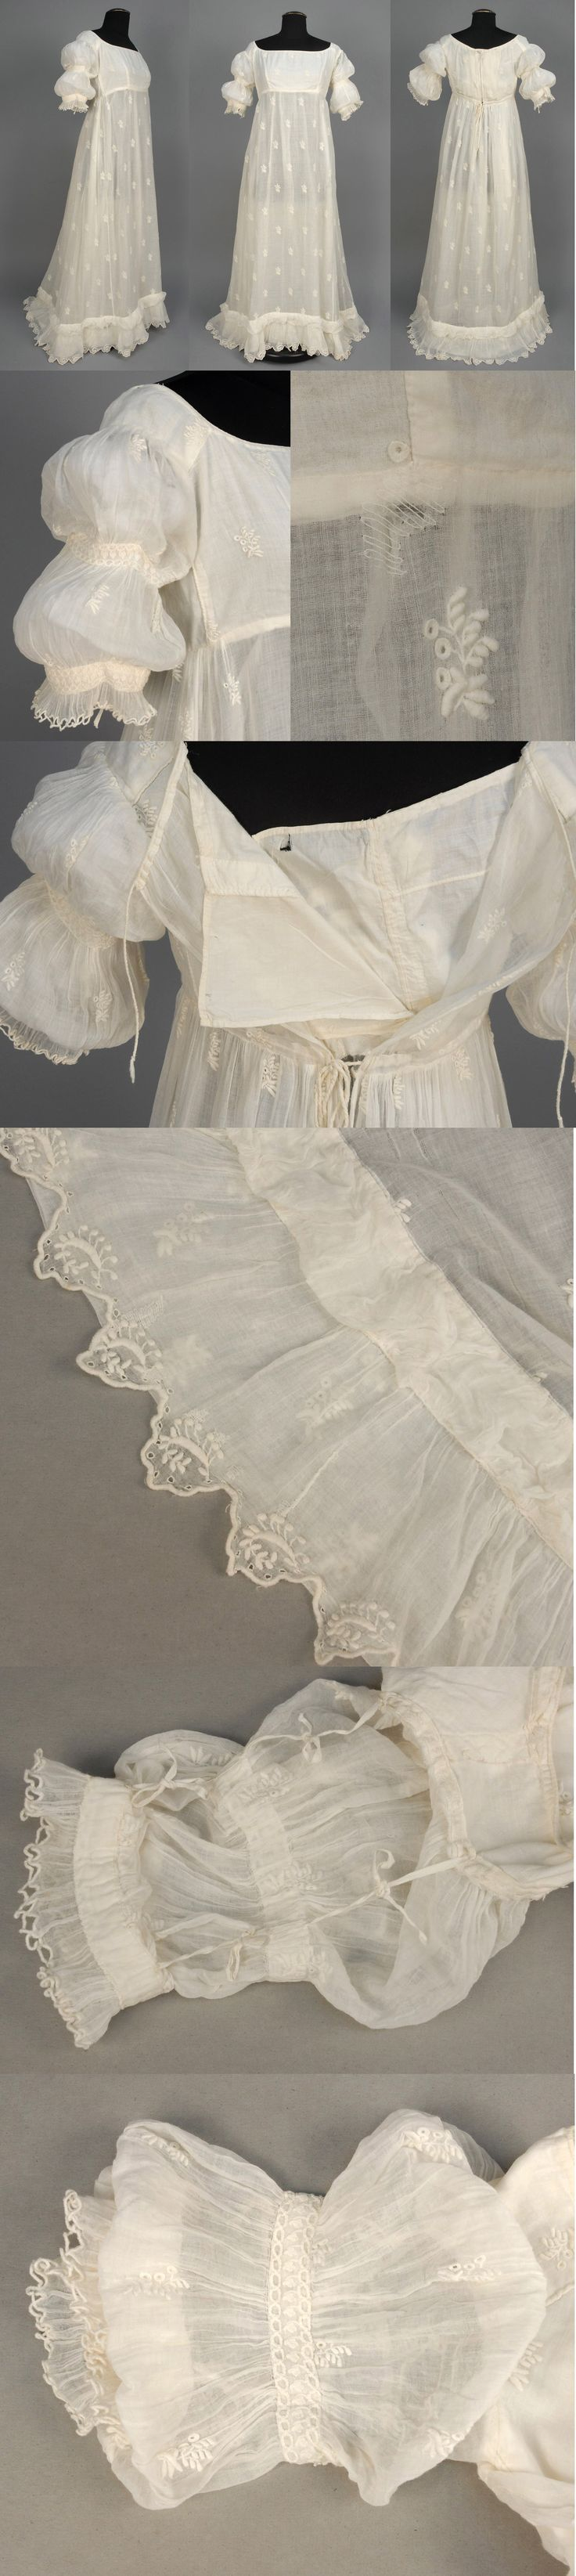 nike free white women EMBROIDERED NEOCLASSICAL COTTON GOWN        Muslin probably Bengali having allover sprigged Broderie Anglaise short sleeve with three pairs of inside ties to adjust a double puff ruffled edge back tie at neckline and high waist ruched band above slightly trained hem with scalloped sawtooth border cotton bodice lining Whitaker Auctions